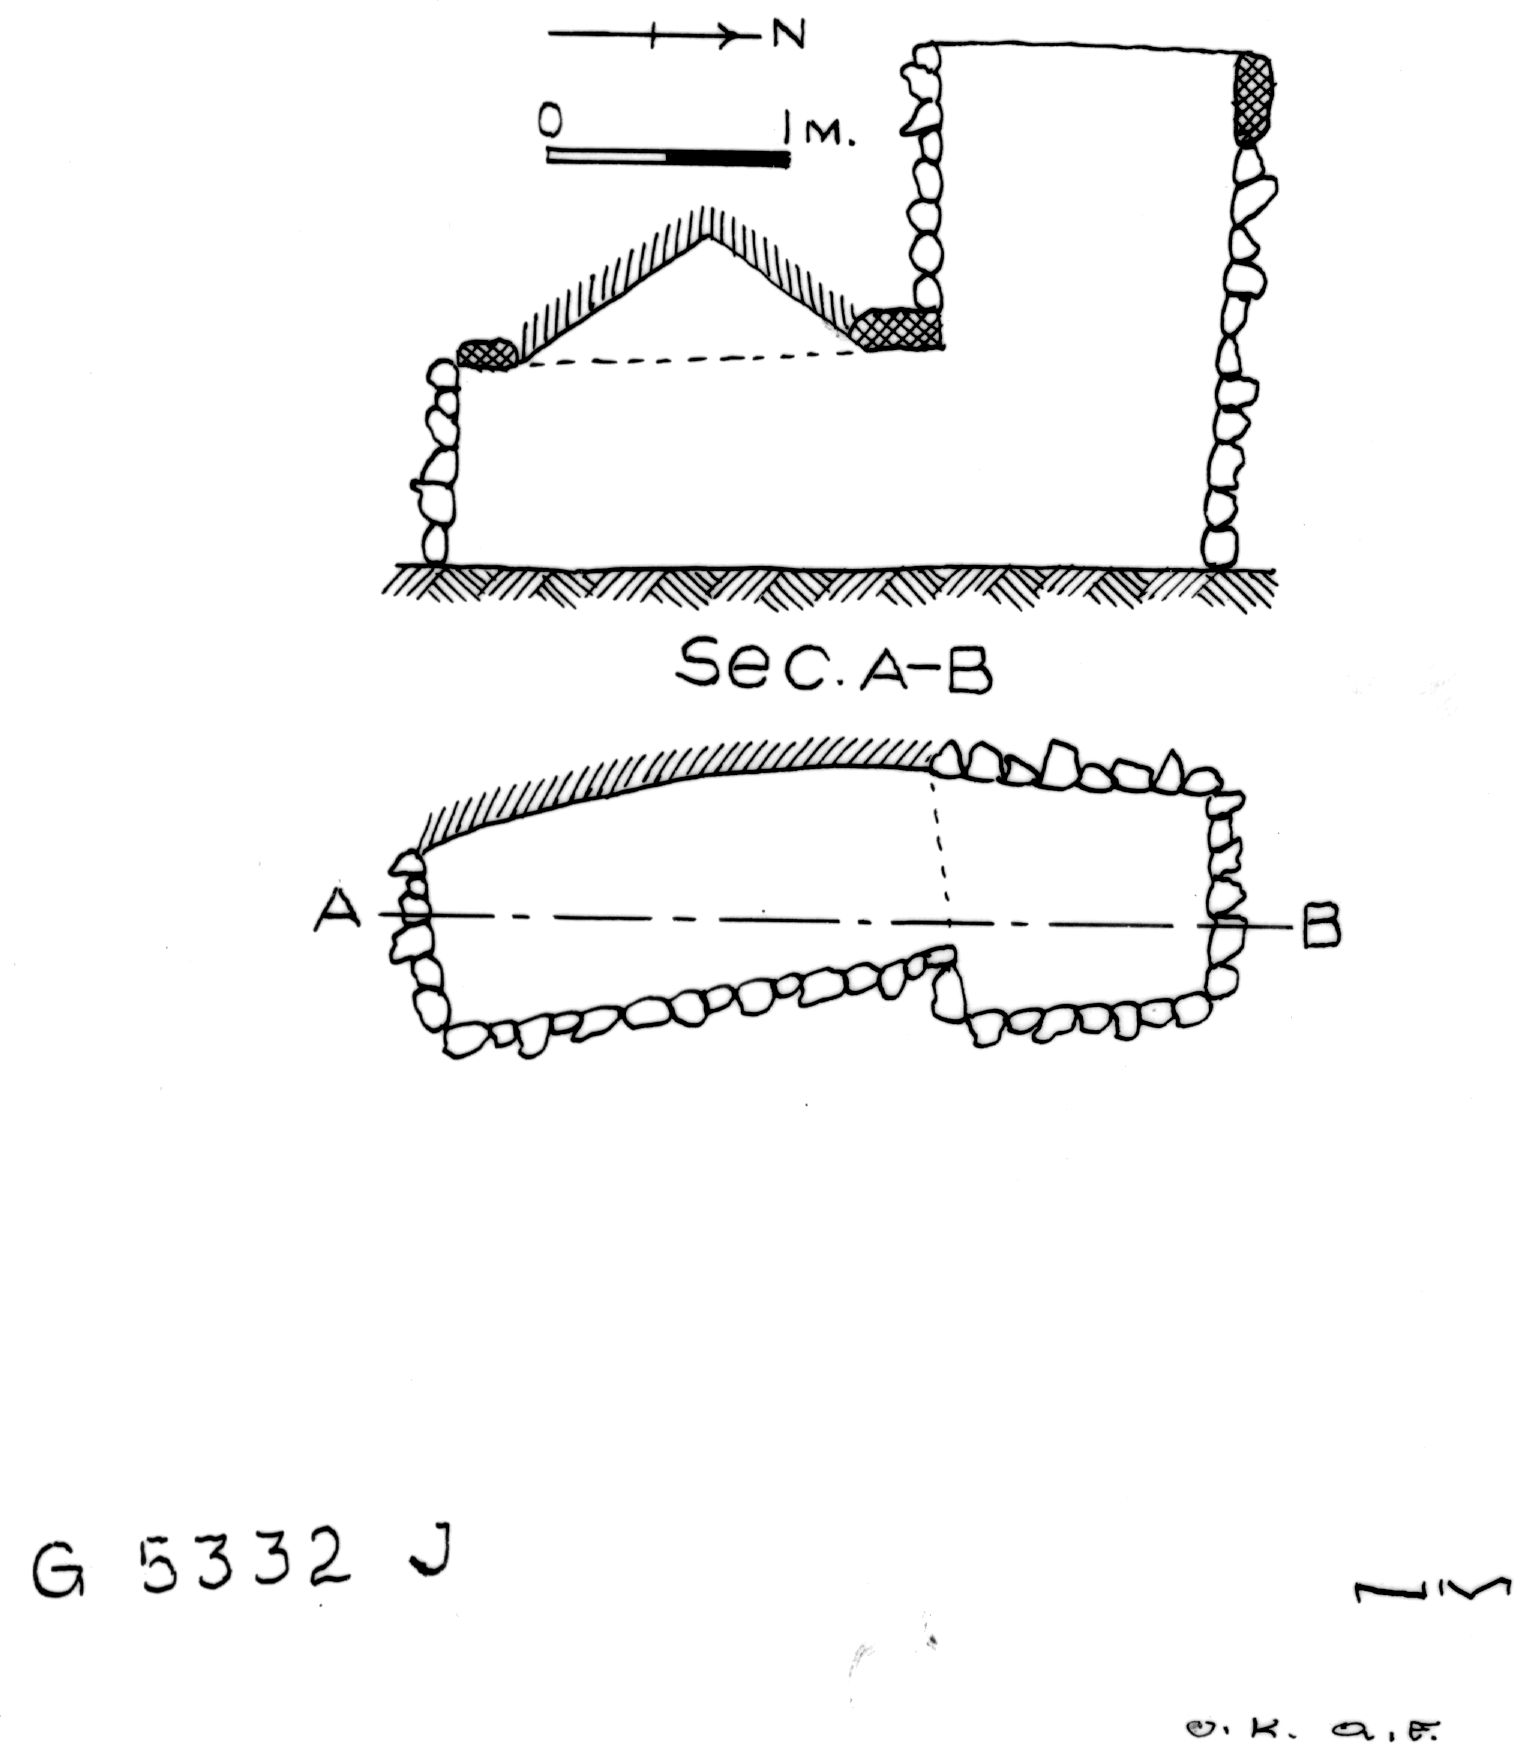 Maps and plans: G 5332, Shaft J (S 805)